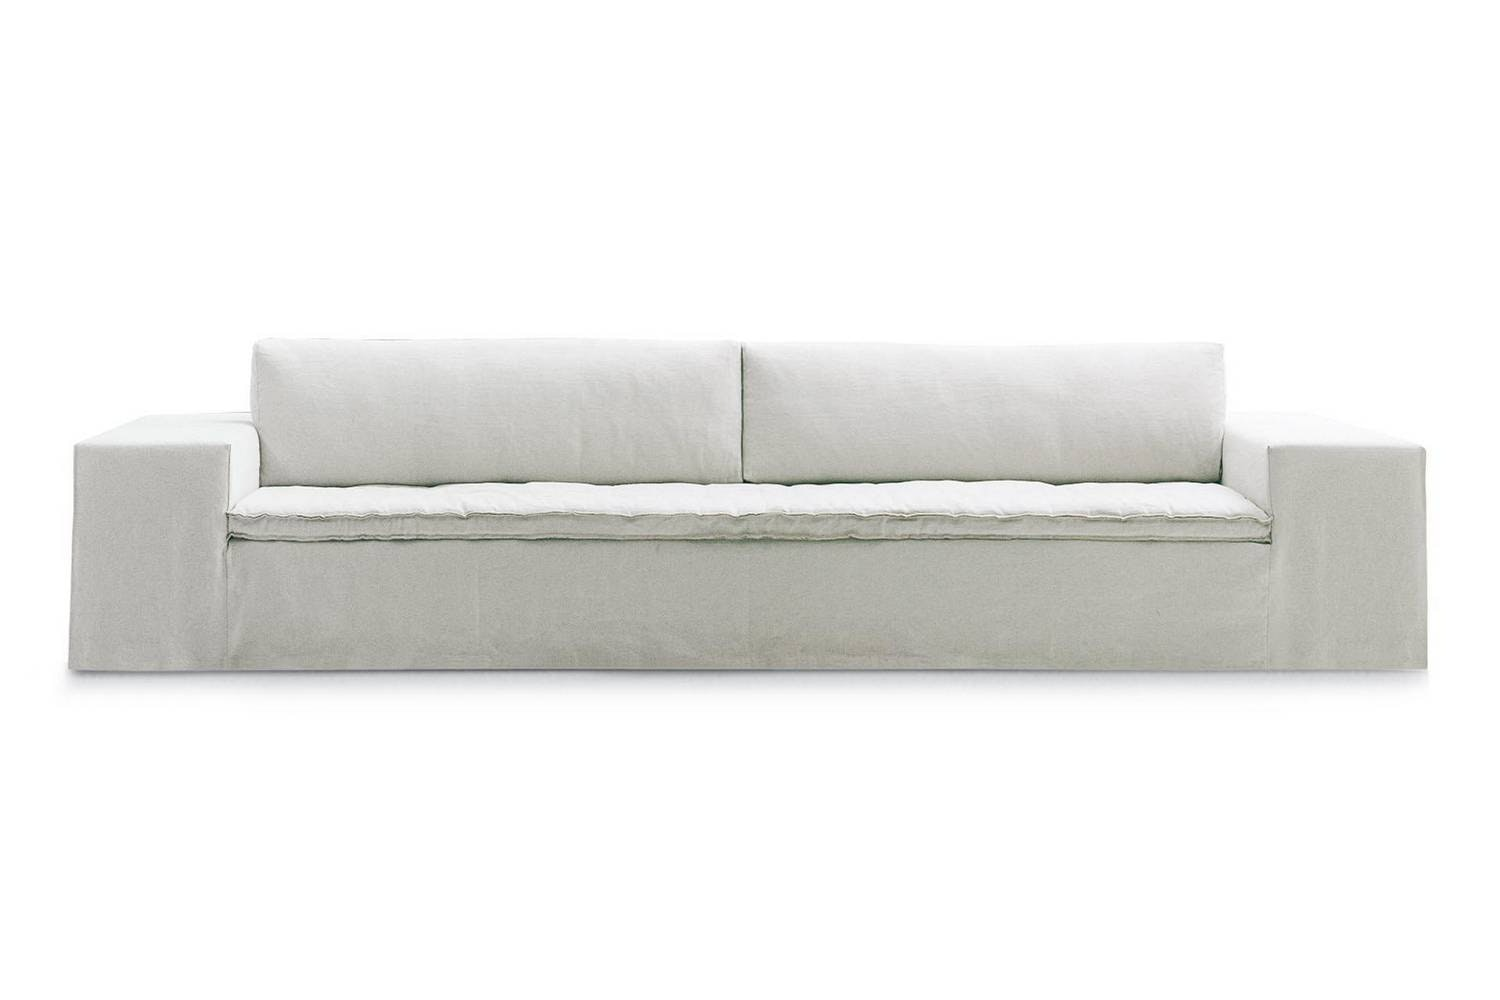 Airport Sofa by Paola Navone for Poliform